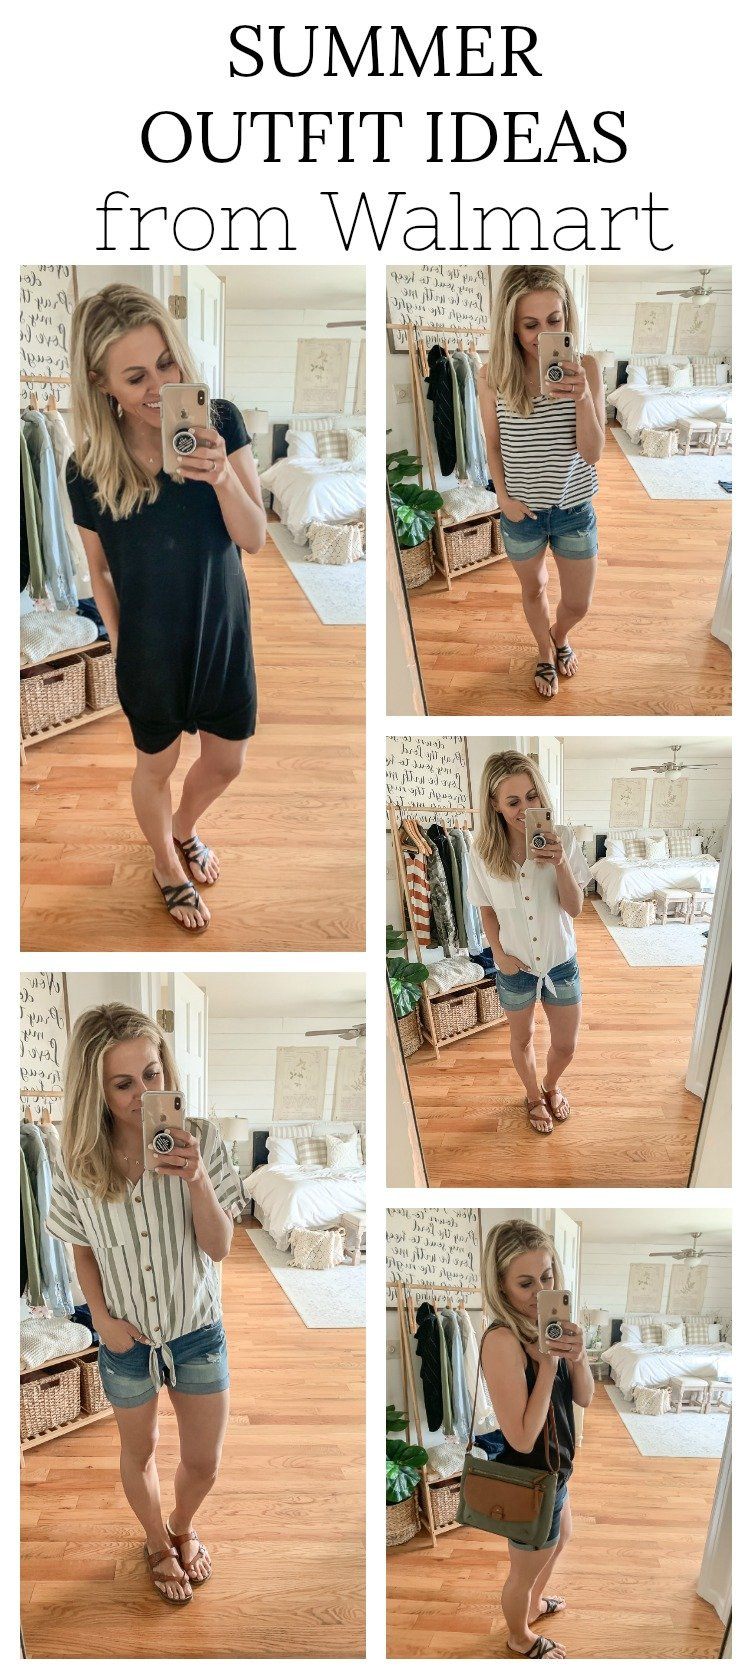 Summer Outfit Ideas from Walmart. Cute and affordable outfits.